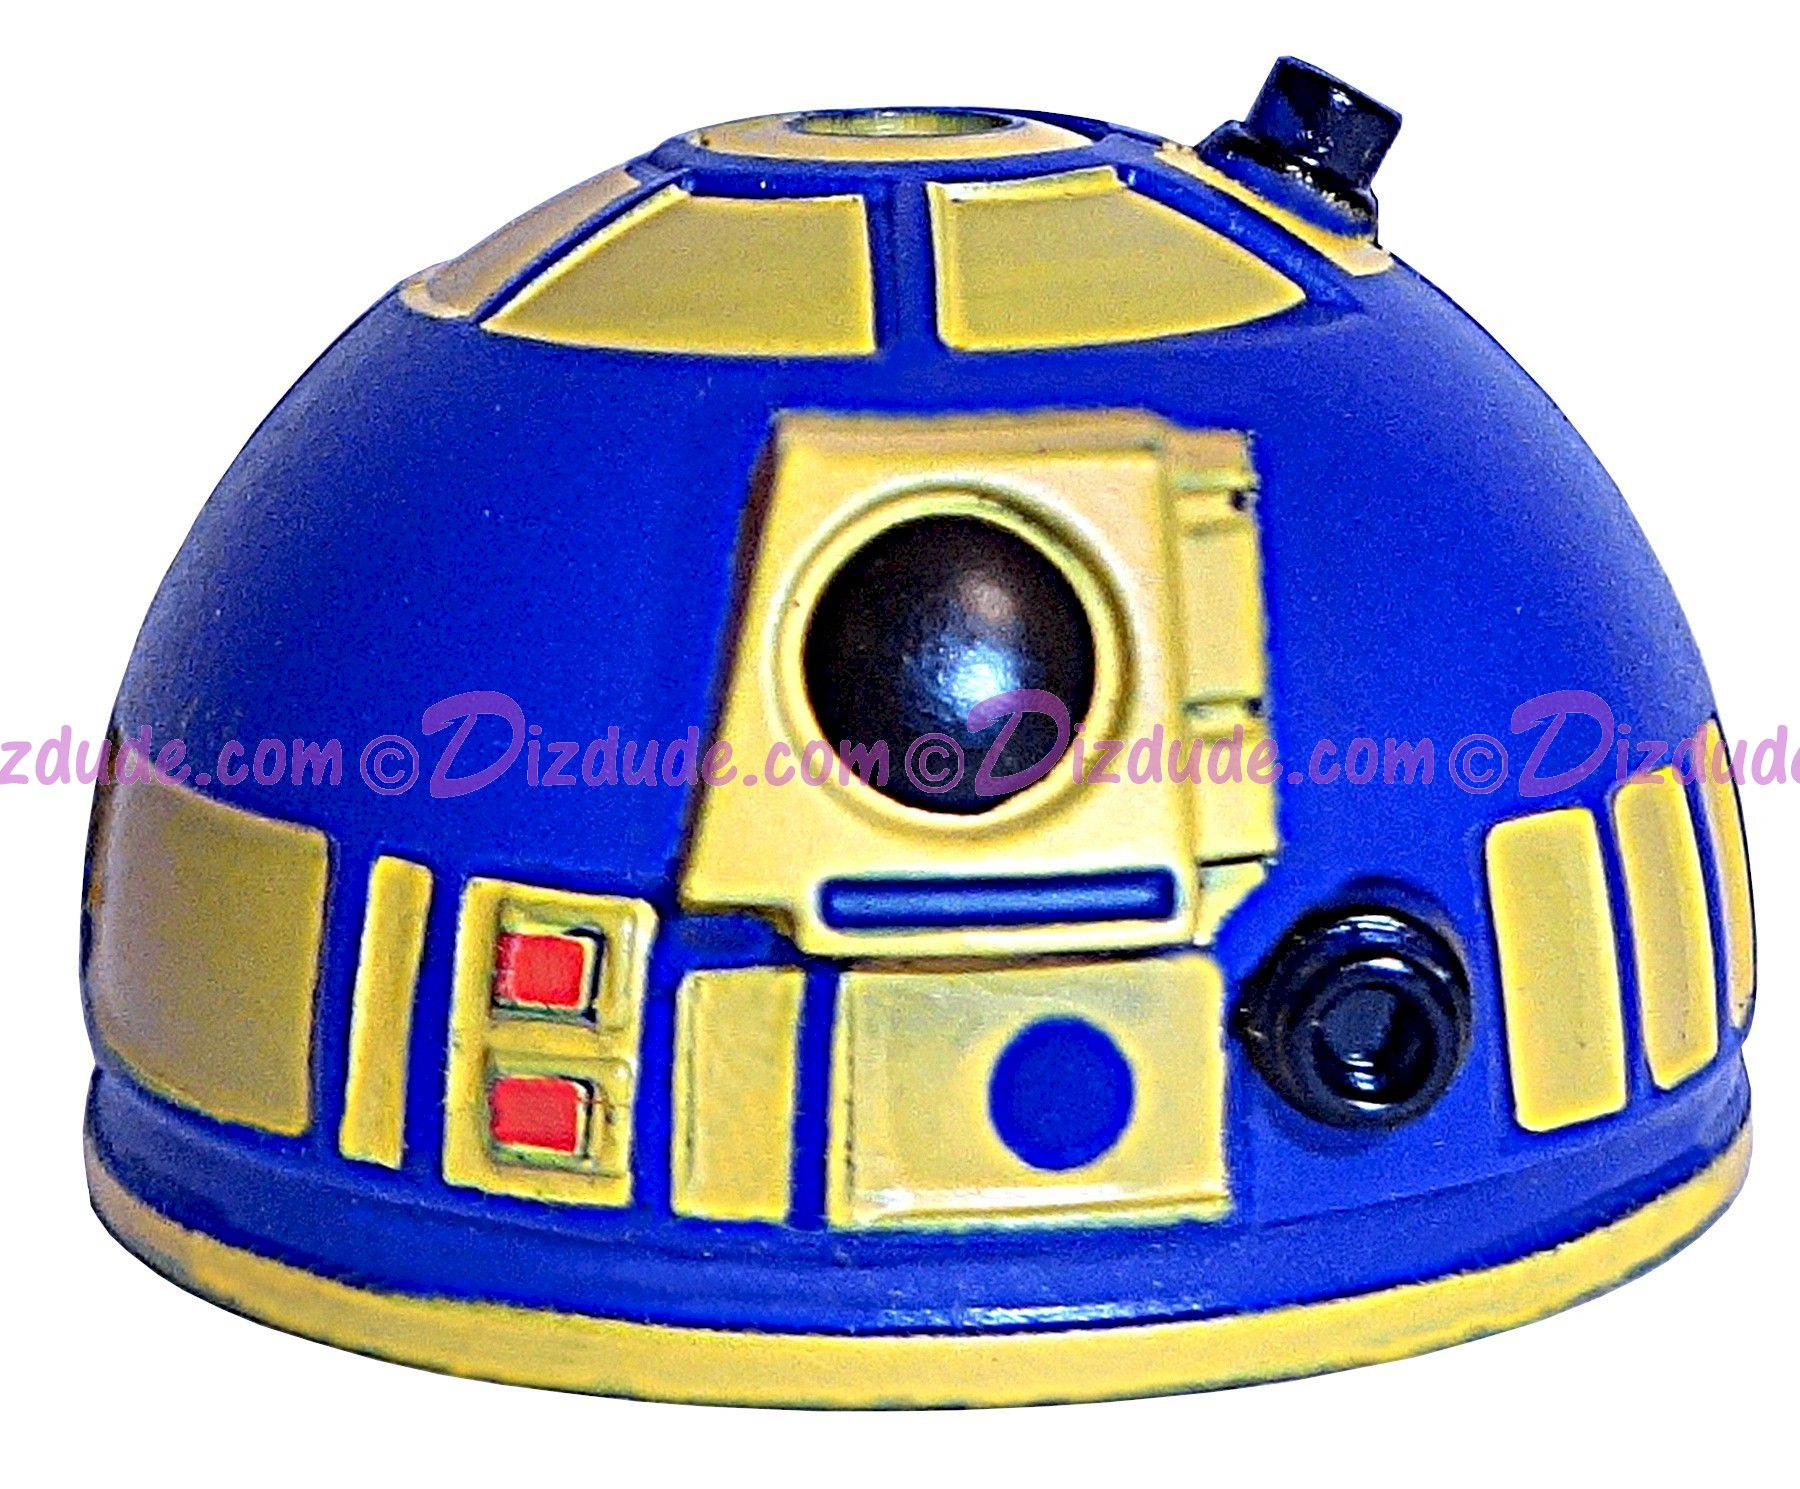 Blue & Yellow Astromech Droid Dome ~ Series 2 from Disney Star Wars Build-A-Droid Factory © Dizdude.com